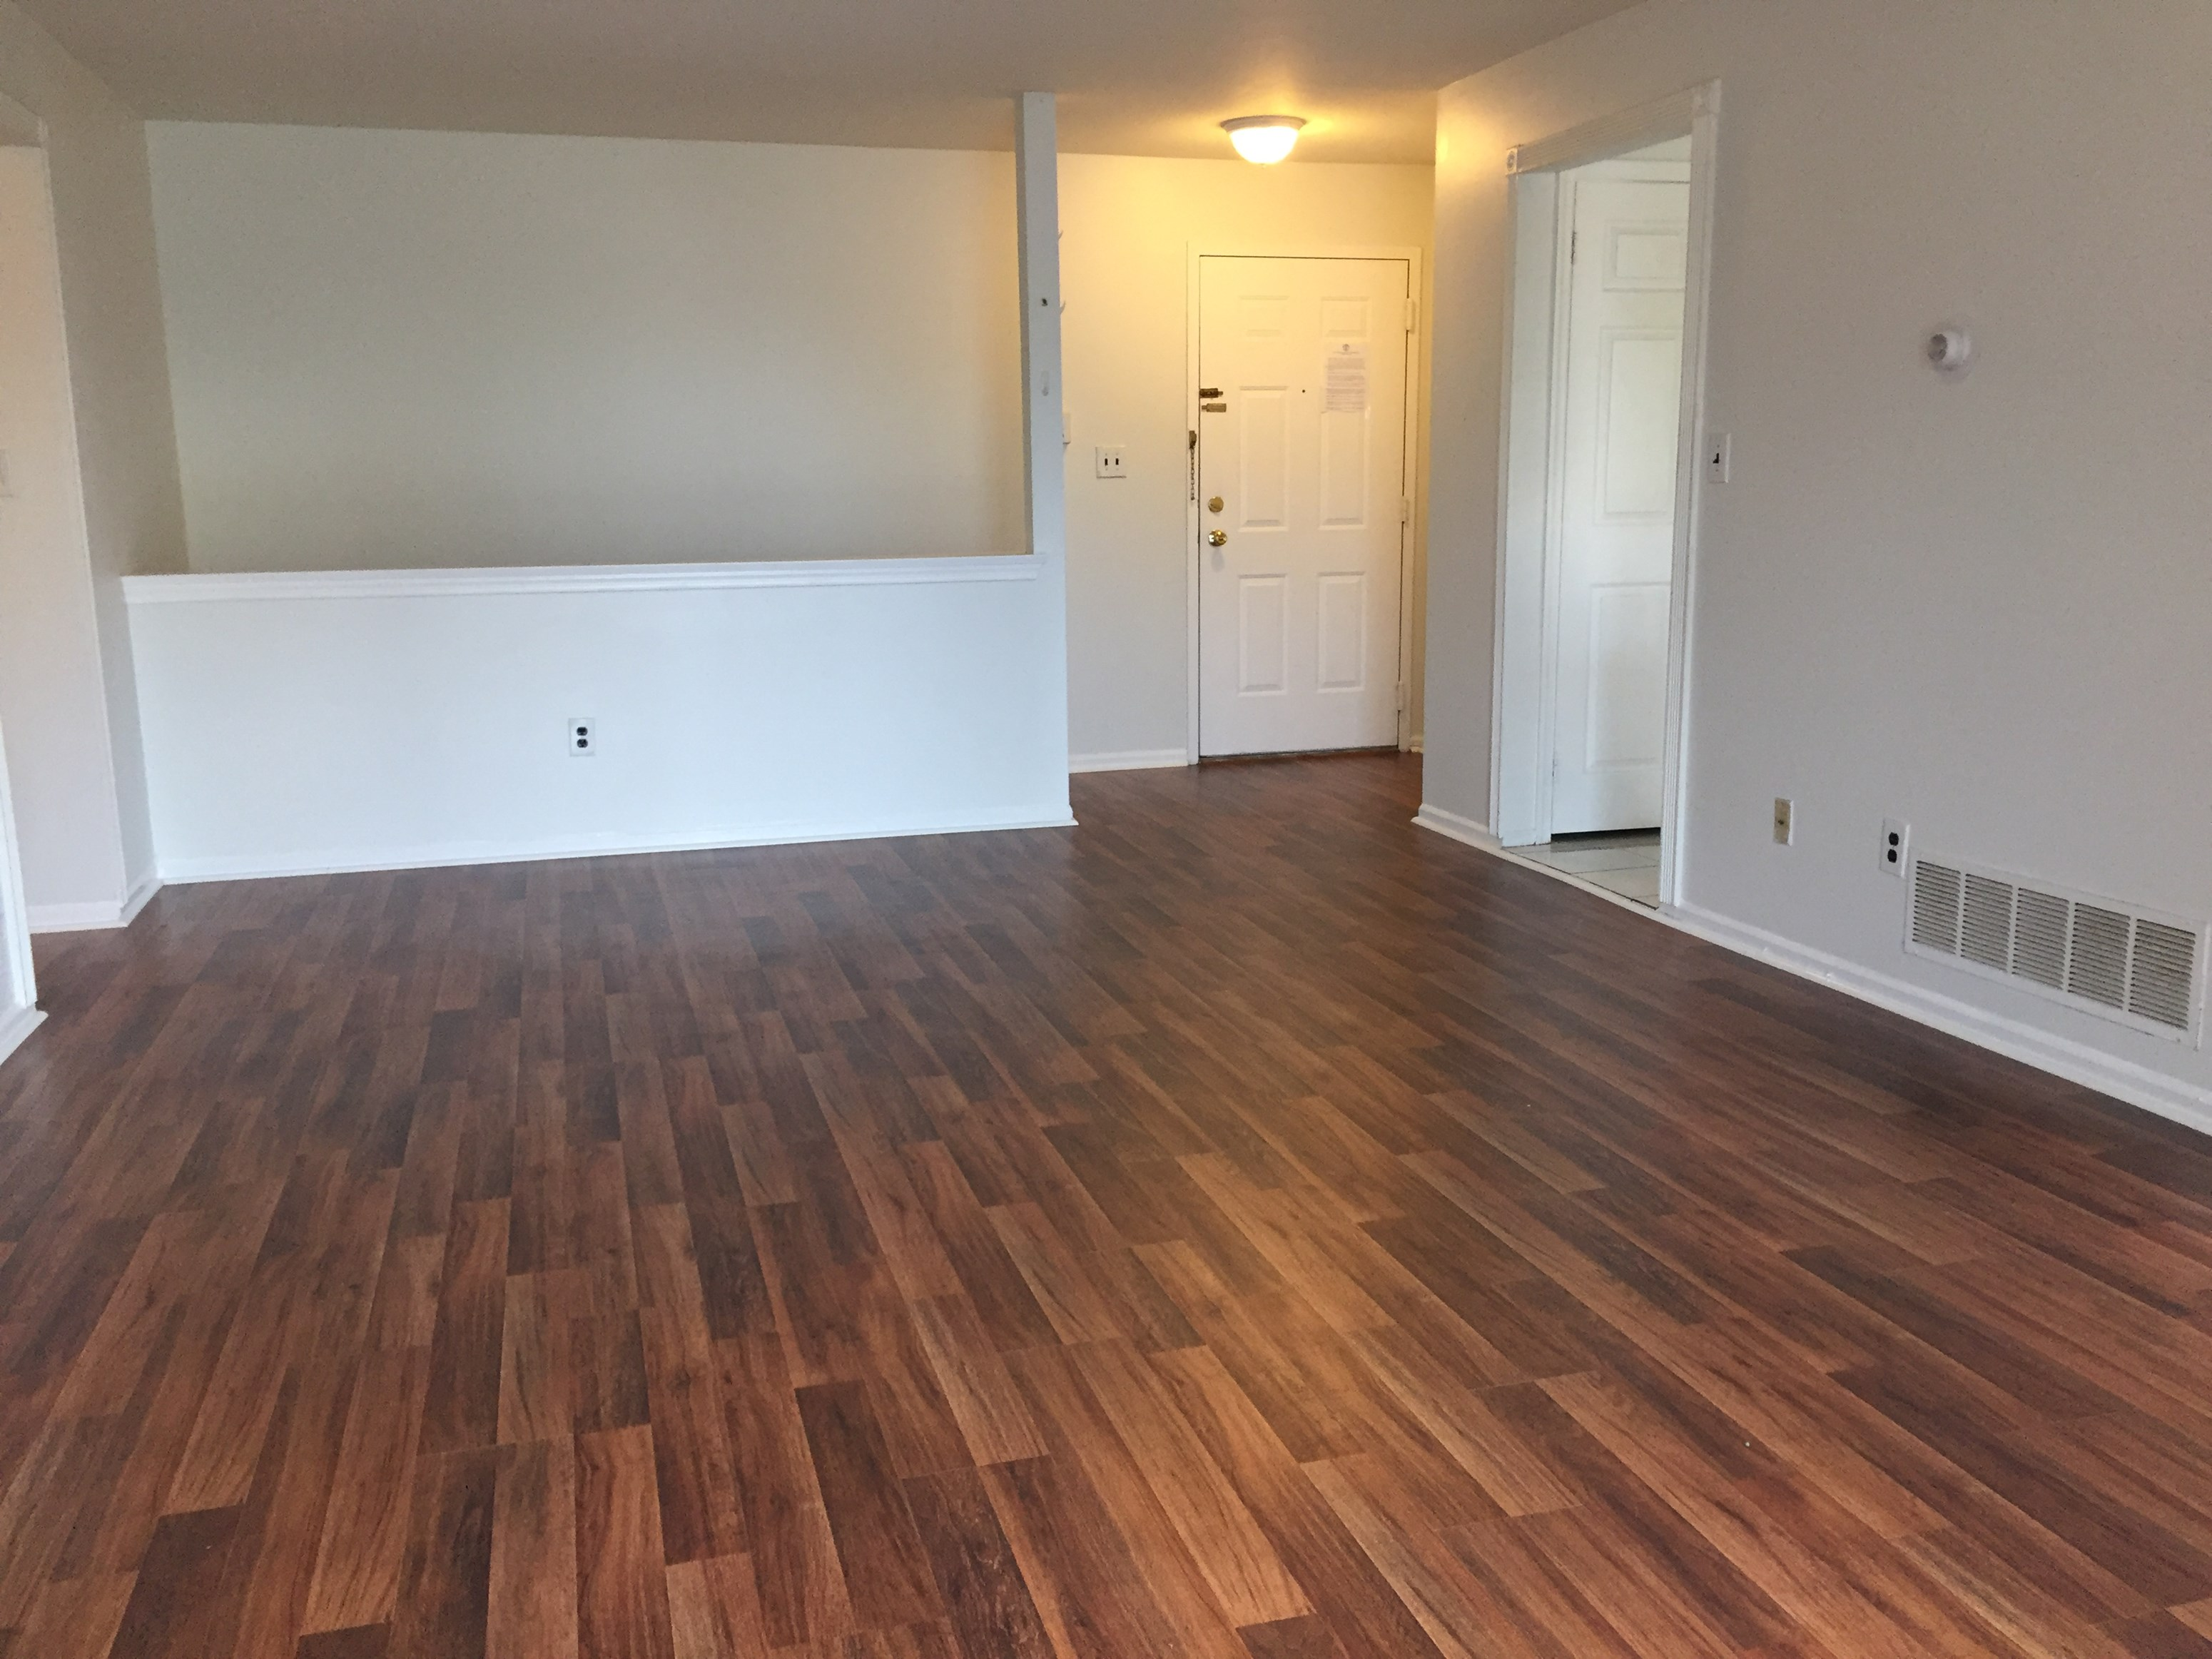 Edison - Spacious 3BR Townhouse For Rent - 10 Min Walk To